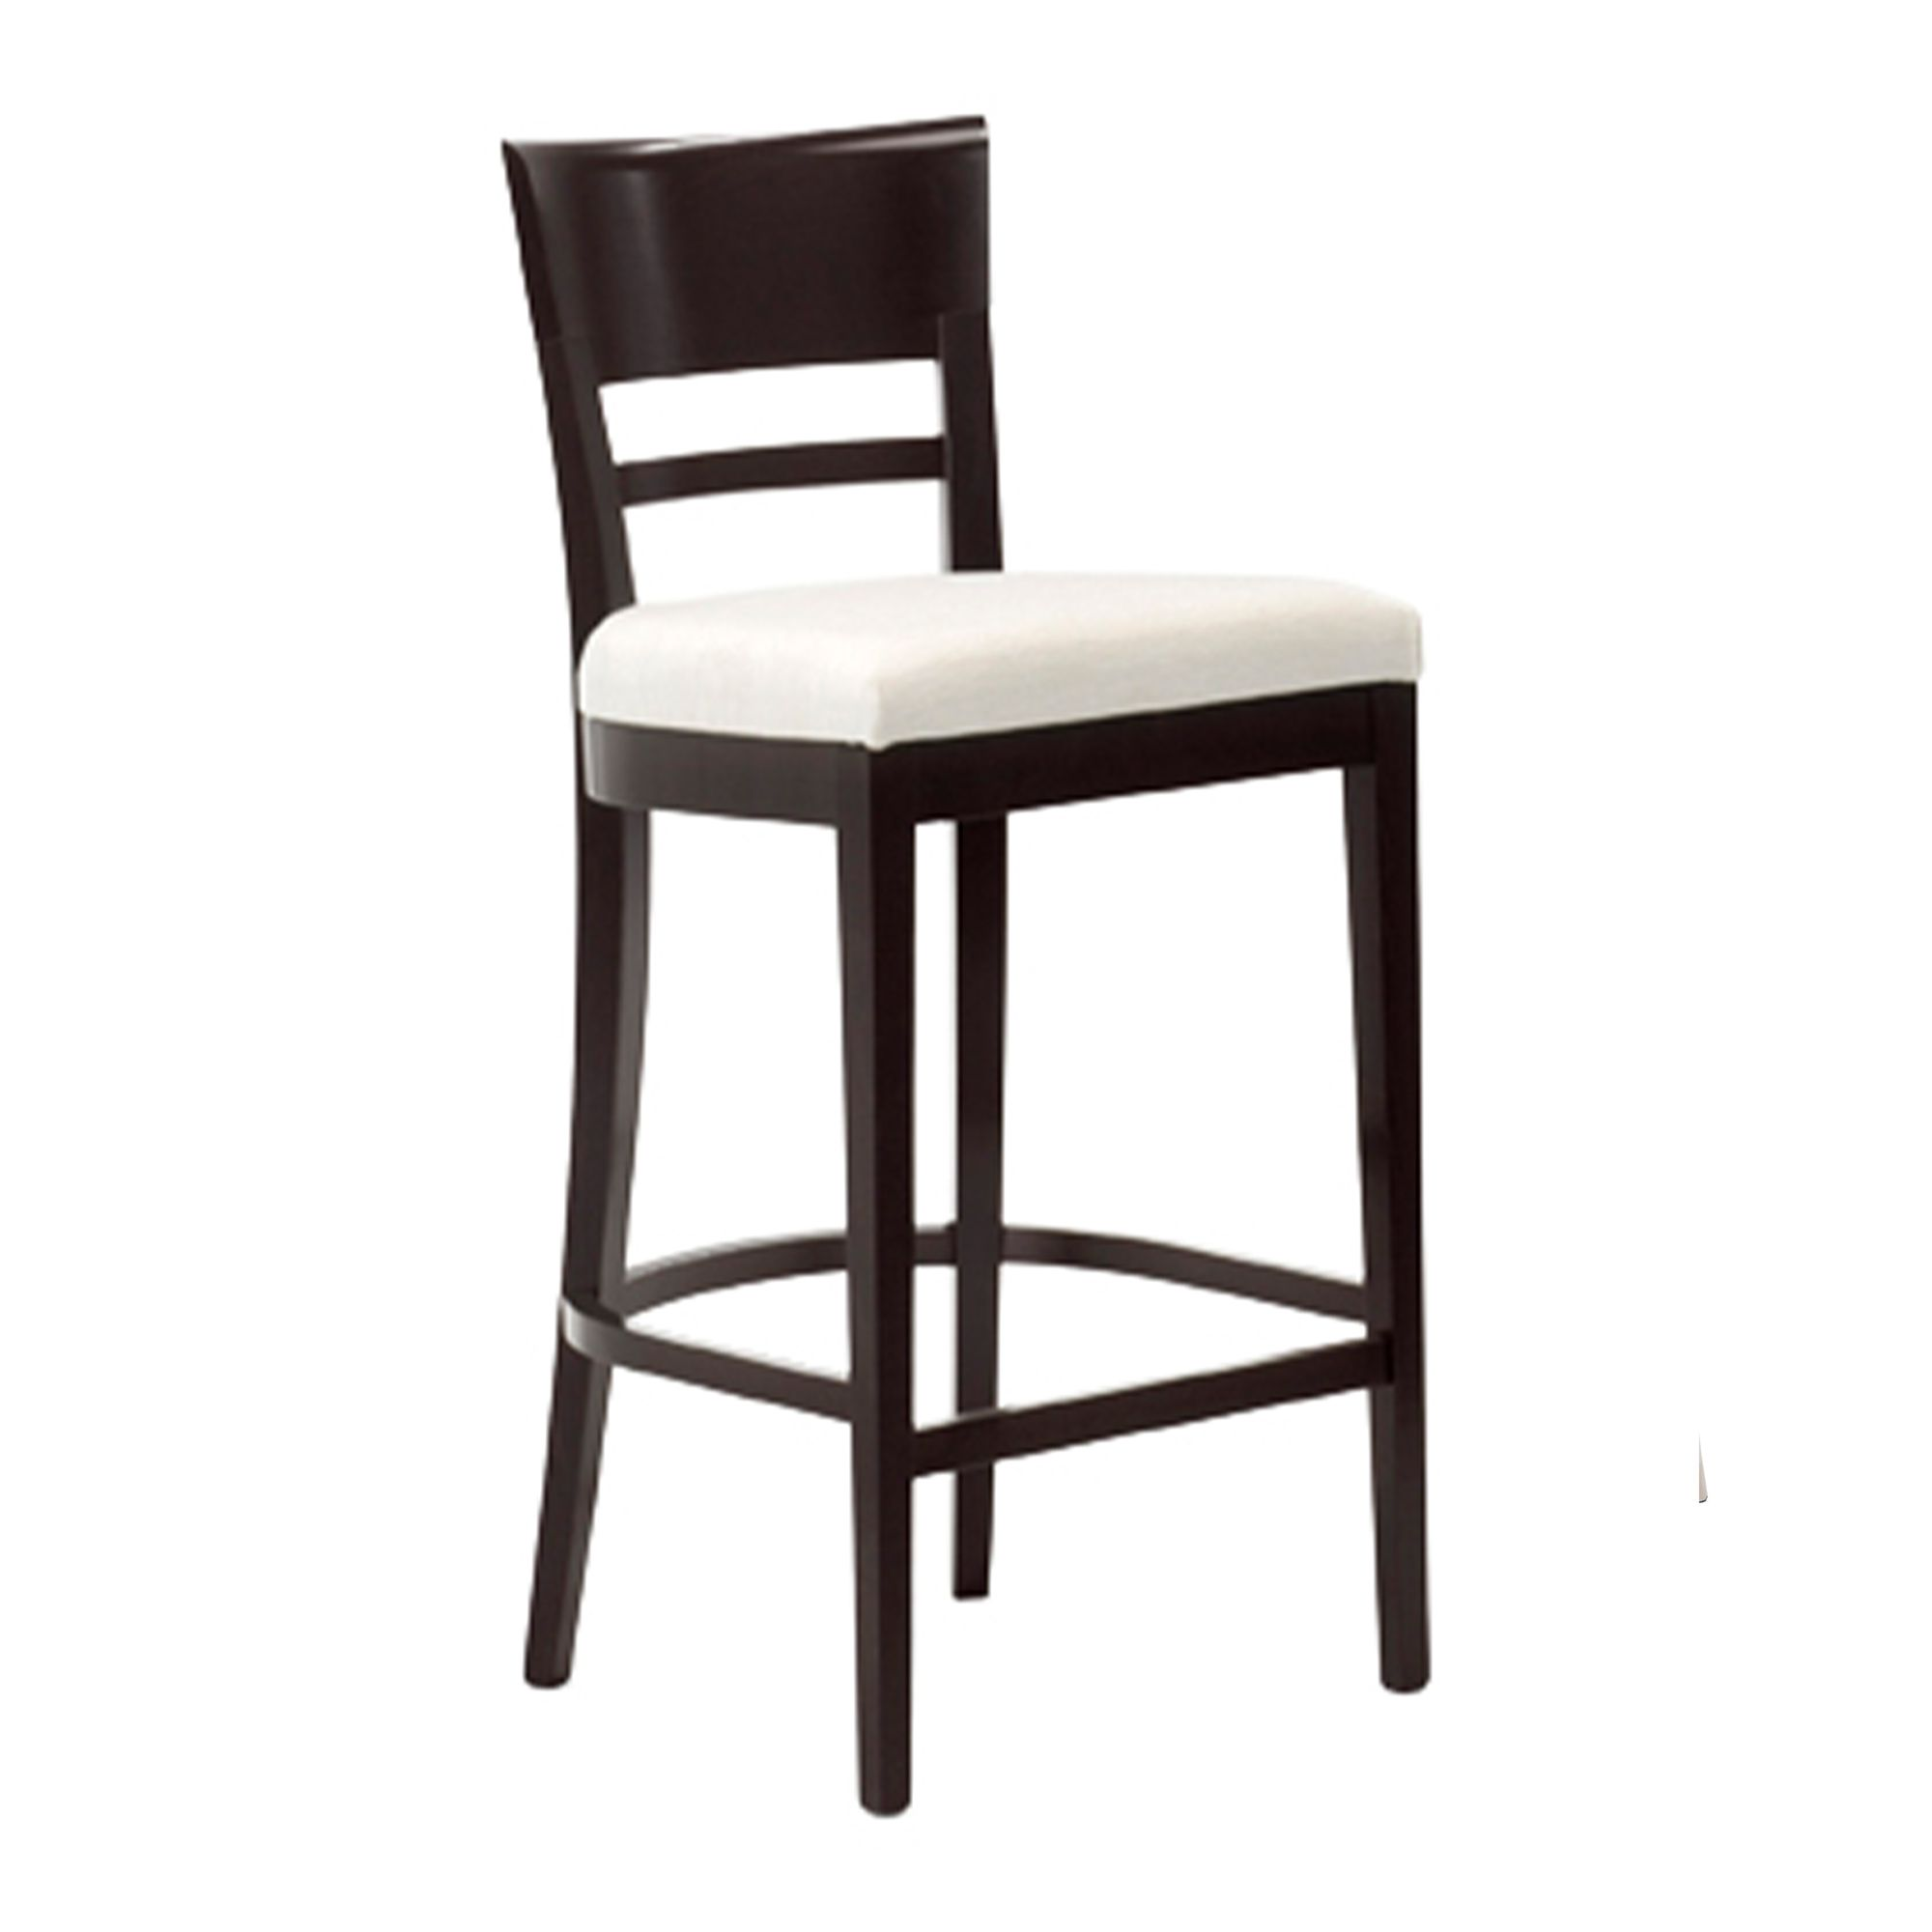 Model 944 stool in classic style